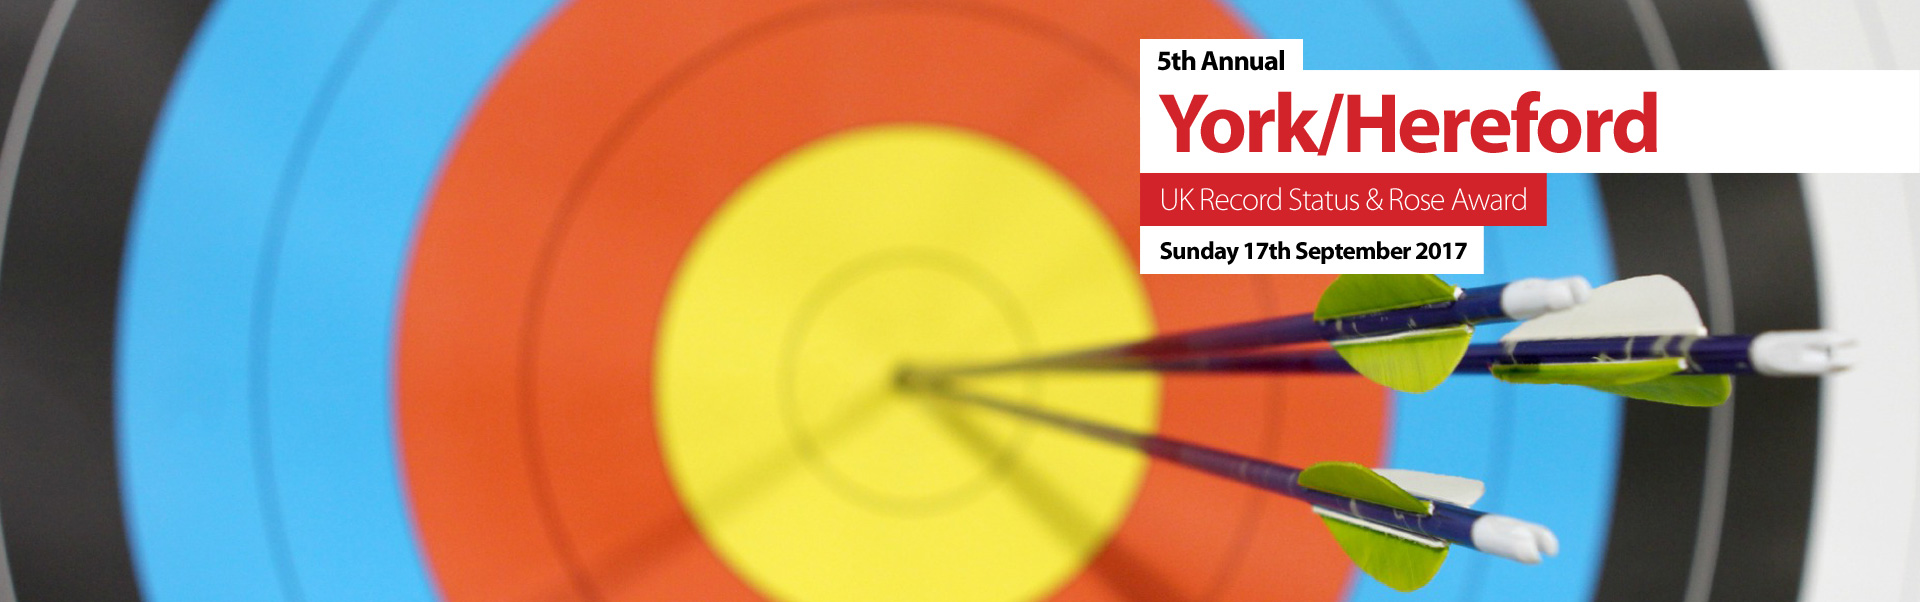 5th Annual York/Hereford